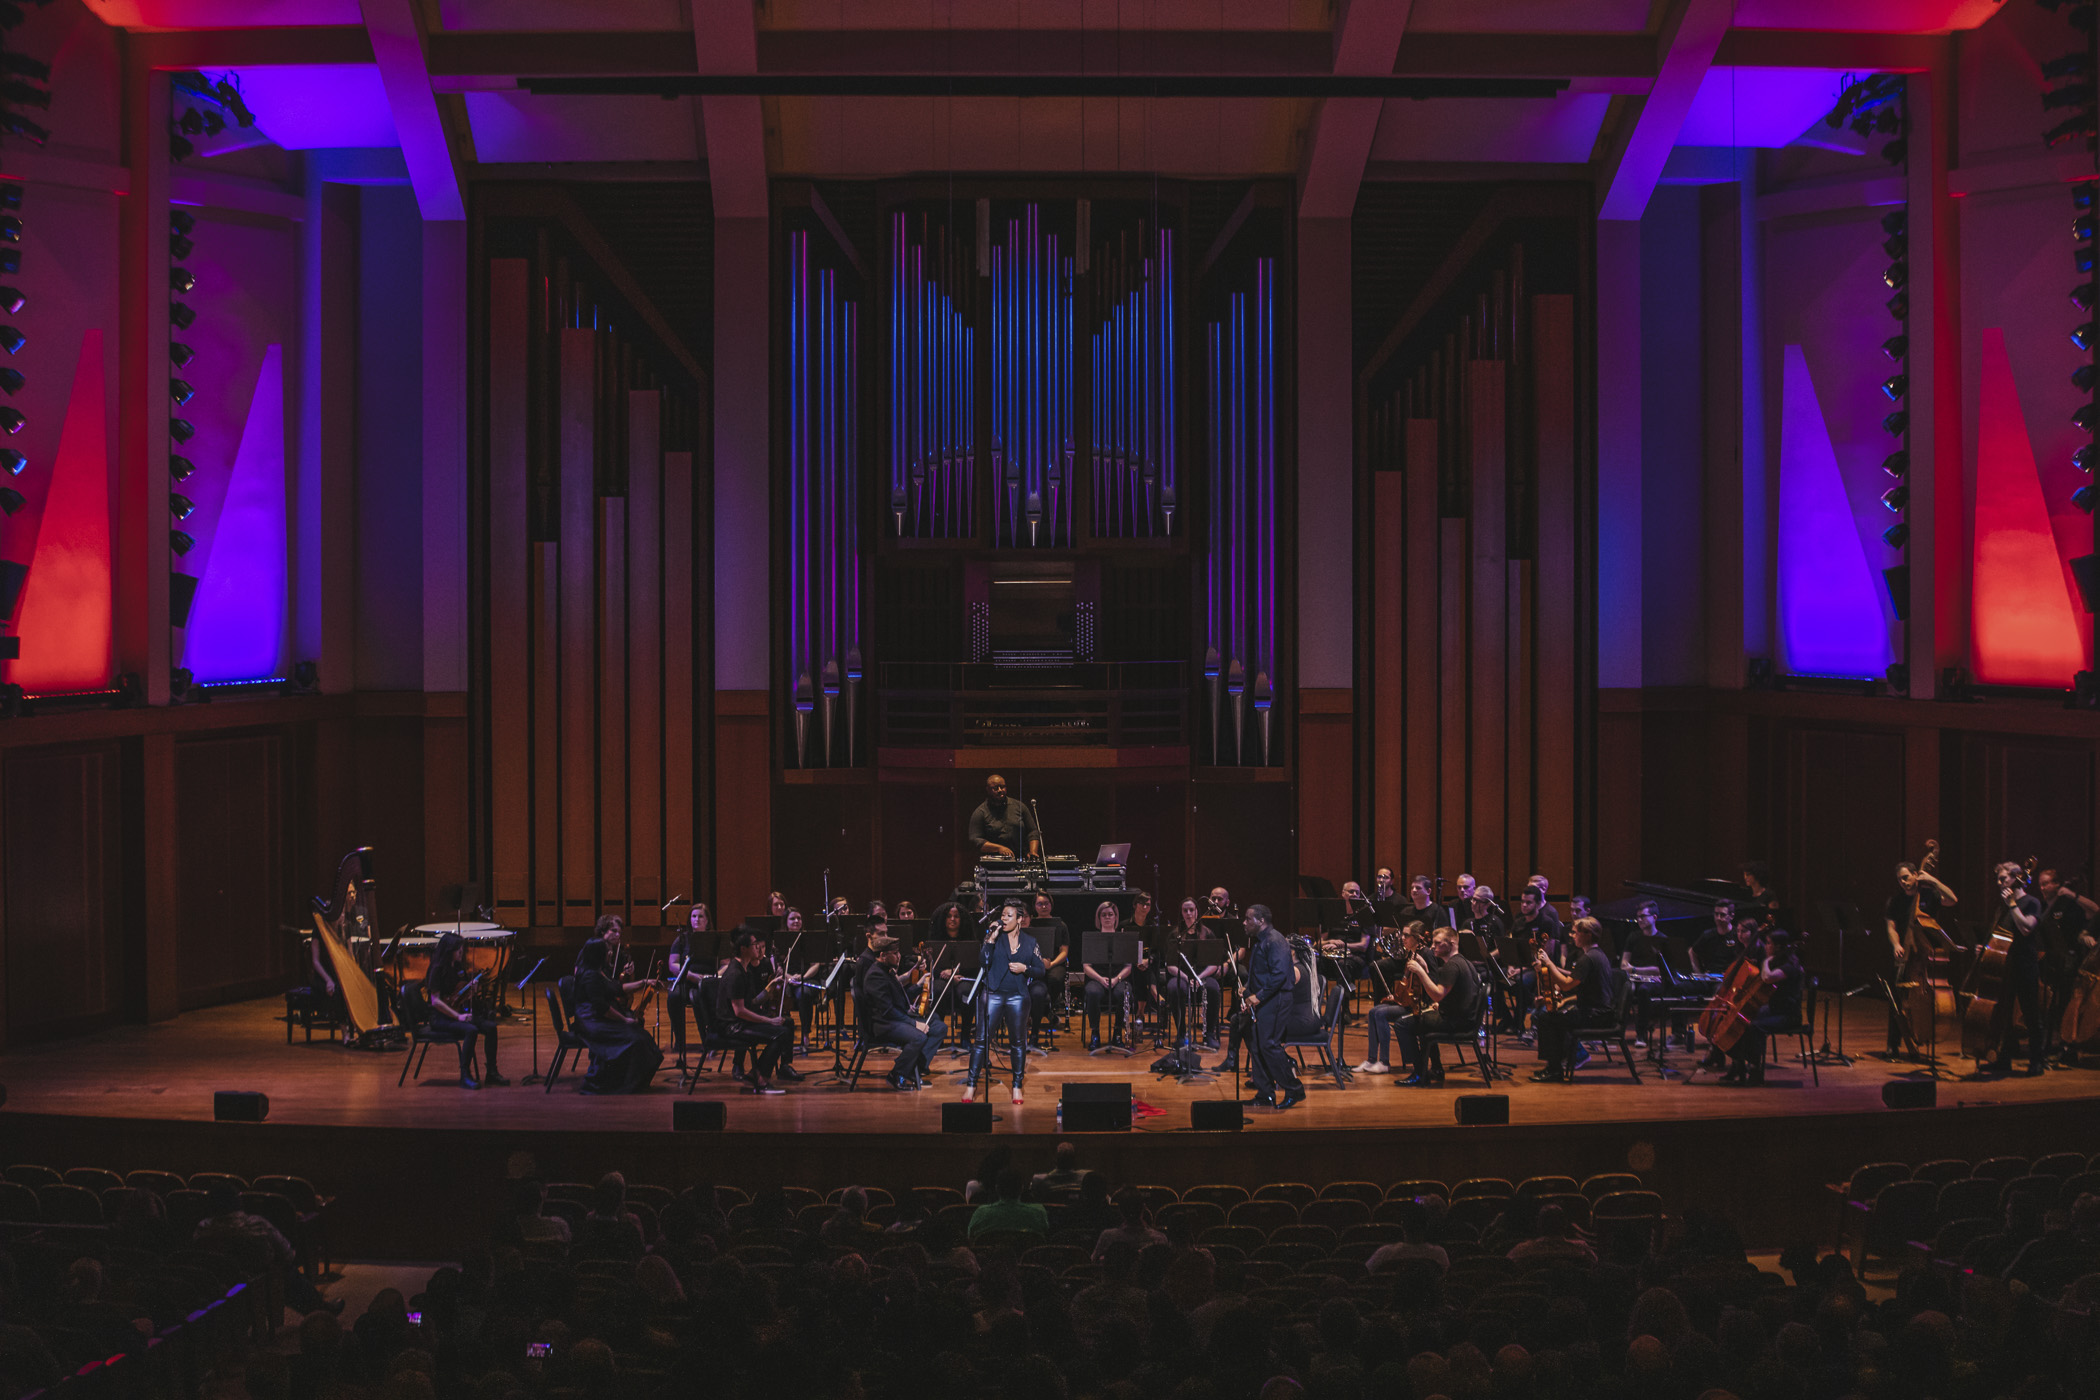 "Last night (Jan. 26, 2020) patrons were treated to a Hip Hop performance from Thee Phantom & the Illharmonic Orchestra at Benaroya Hall. Joined live by the Amazon Symphonic Orchestra, the artists combined the 'raw energy and passion of hip-hop' with orchestral accompaniment. Miss the performance? You can listen to their music{&nbsp;}<a  href=""http://www.theephantomhiphop.com/mixes"" target=""_blank"" title=""http://www.theephantomhiphop.com/mixes"">online</a>. (Image: Sunita Martini / Seattle Refined)"